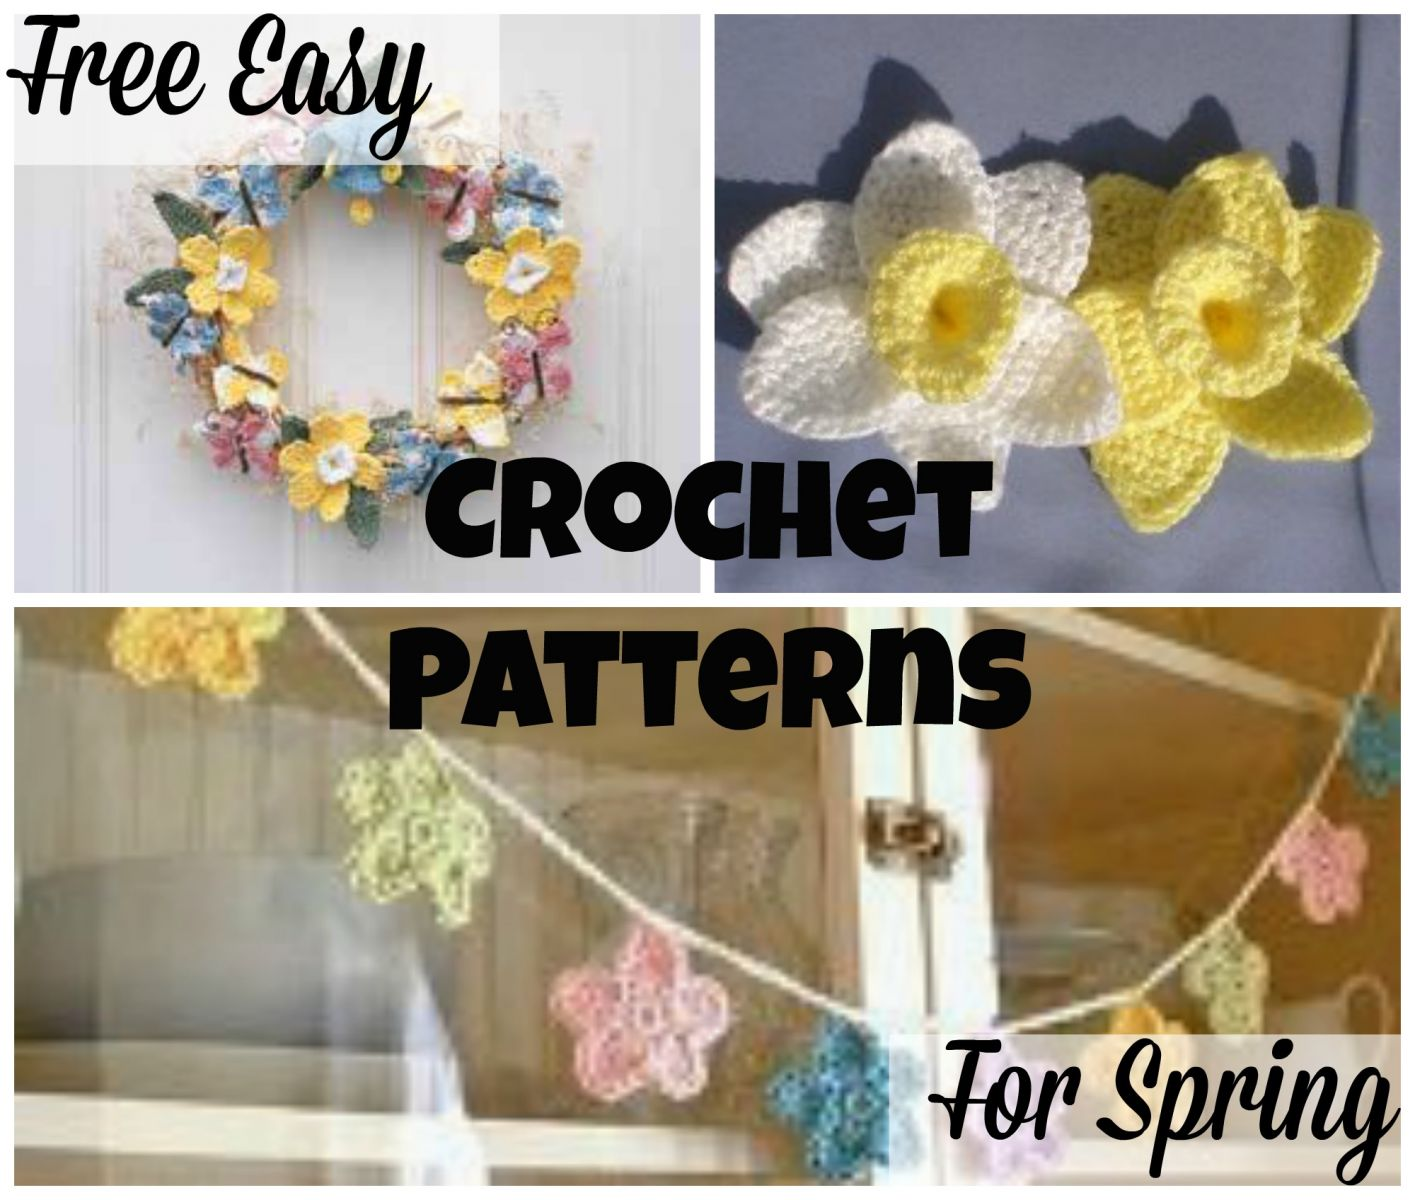 15 Free Easy Crochet Patterns for Spring